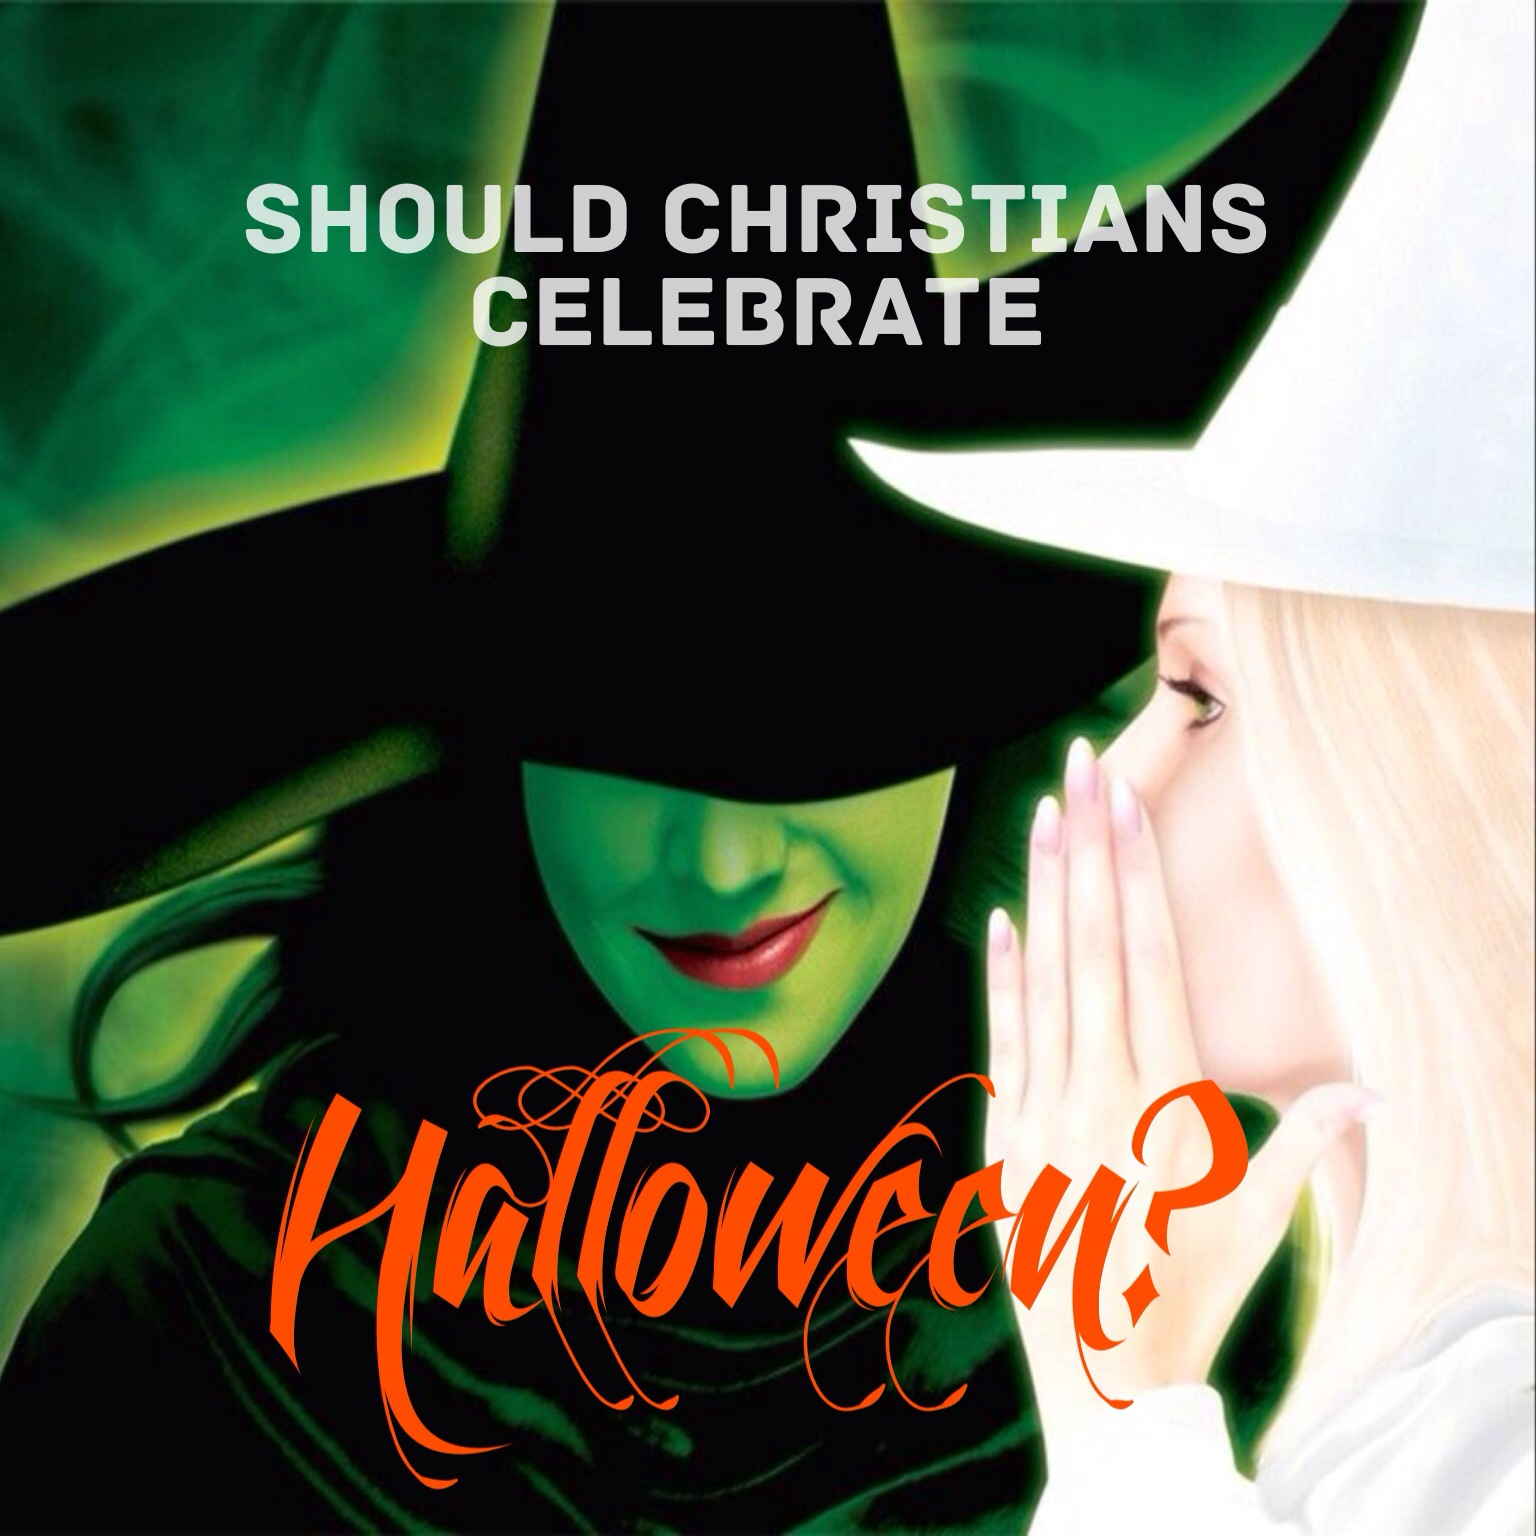 what to do? christians and halloween, should you celebrate it or not